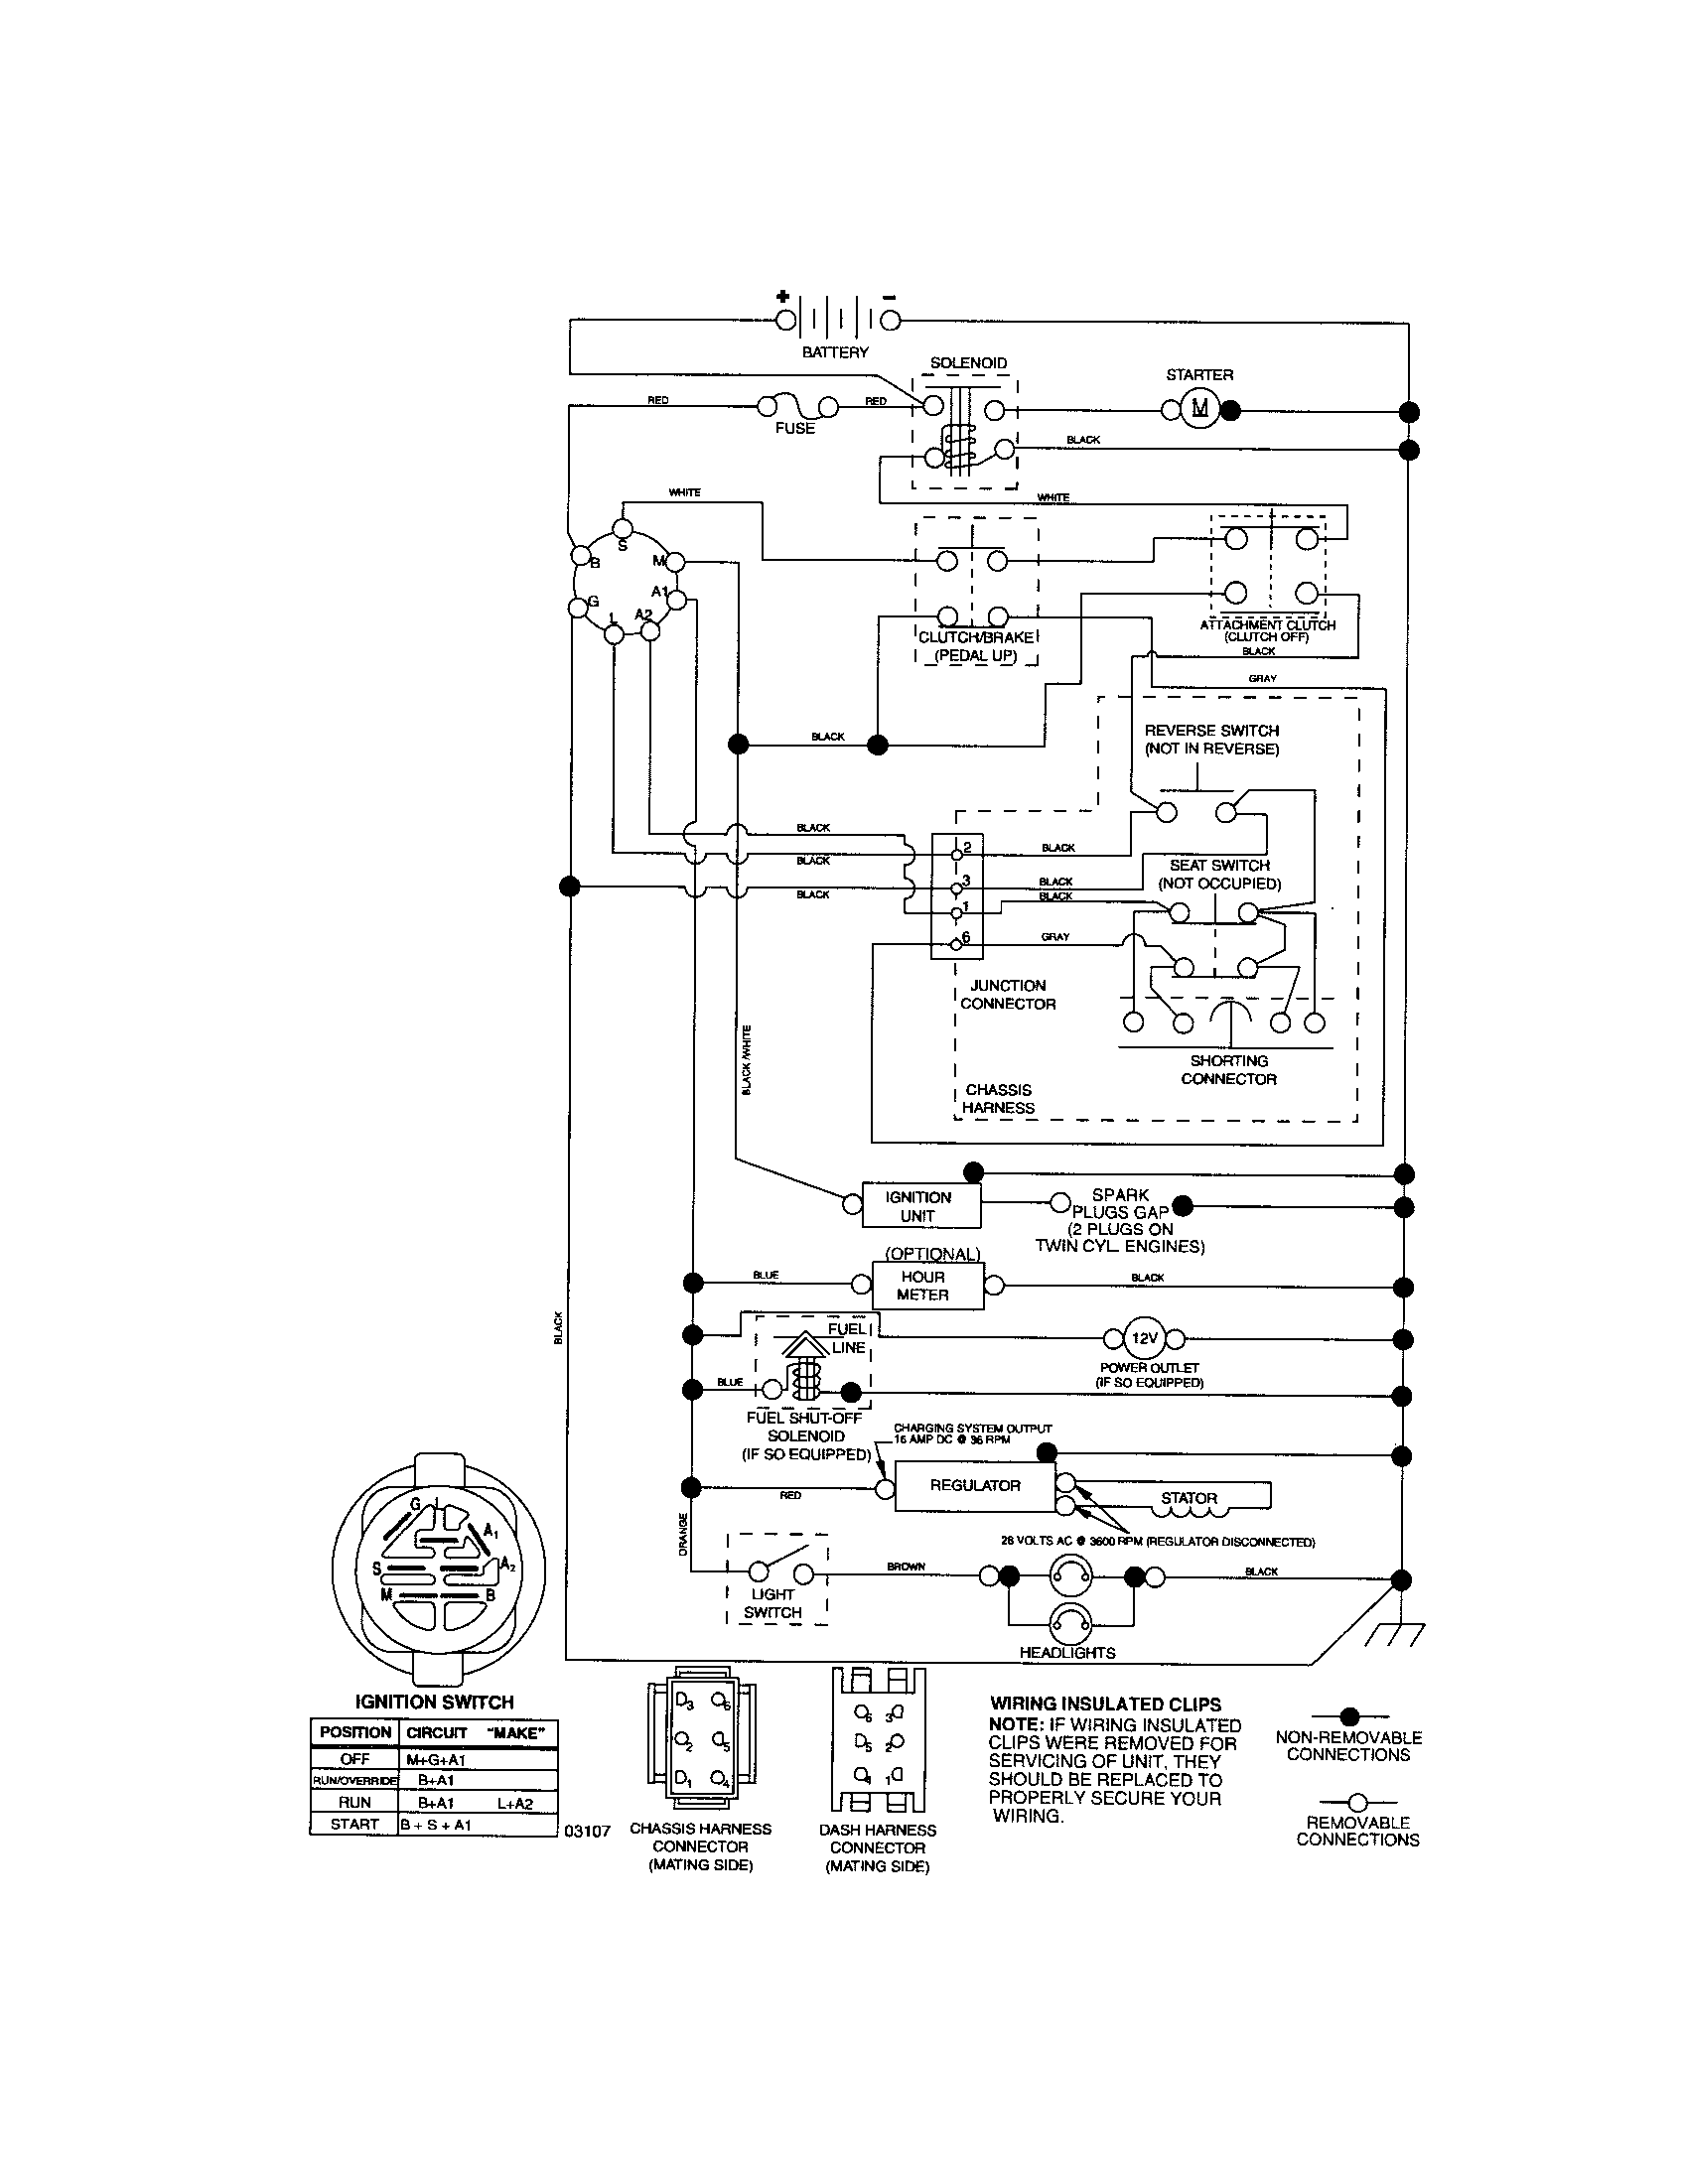 6af5f1447fd13c8443376822ddc1e105 craftsman riding mower electrical diagram wiring diagram simple tractor wiring diagram at eliteediting.co